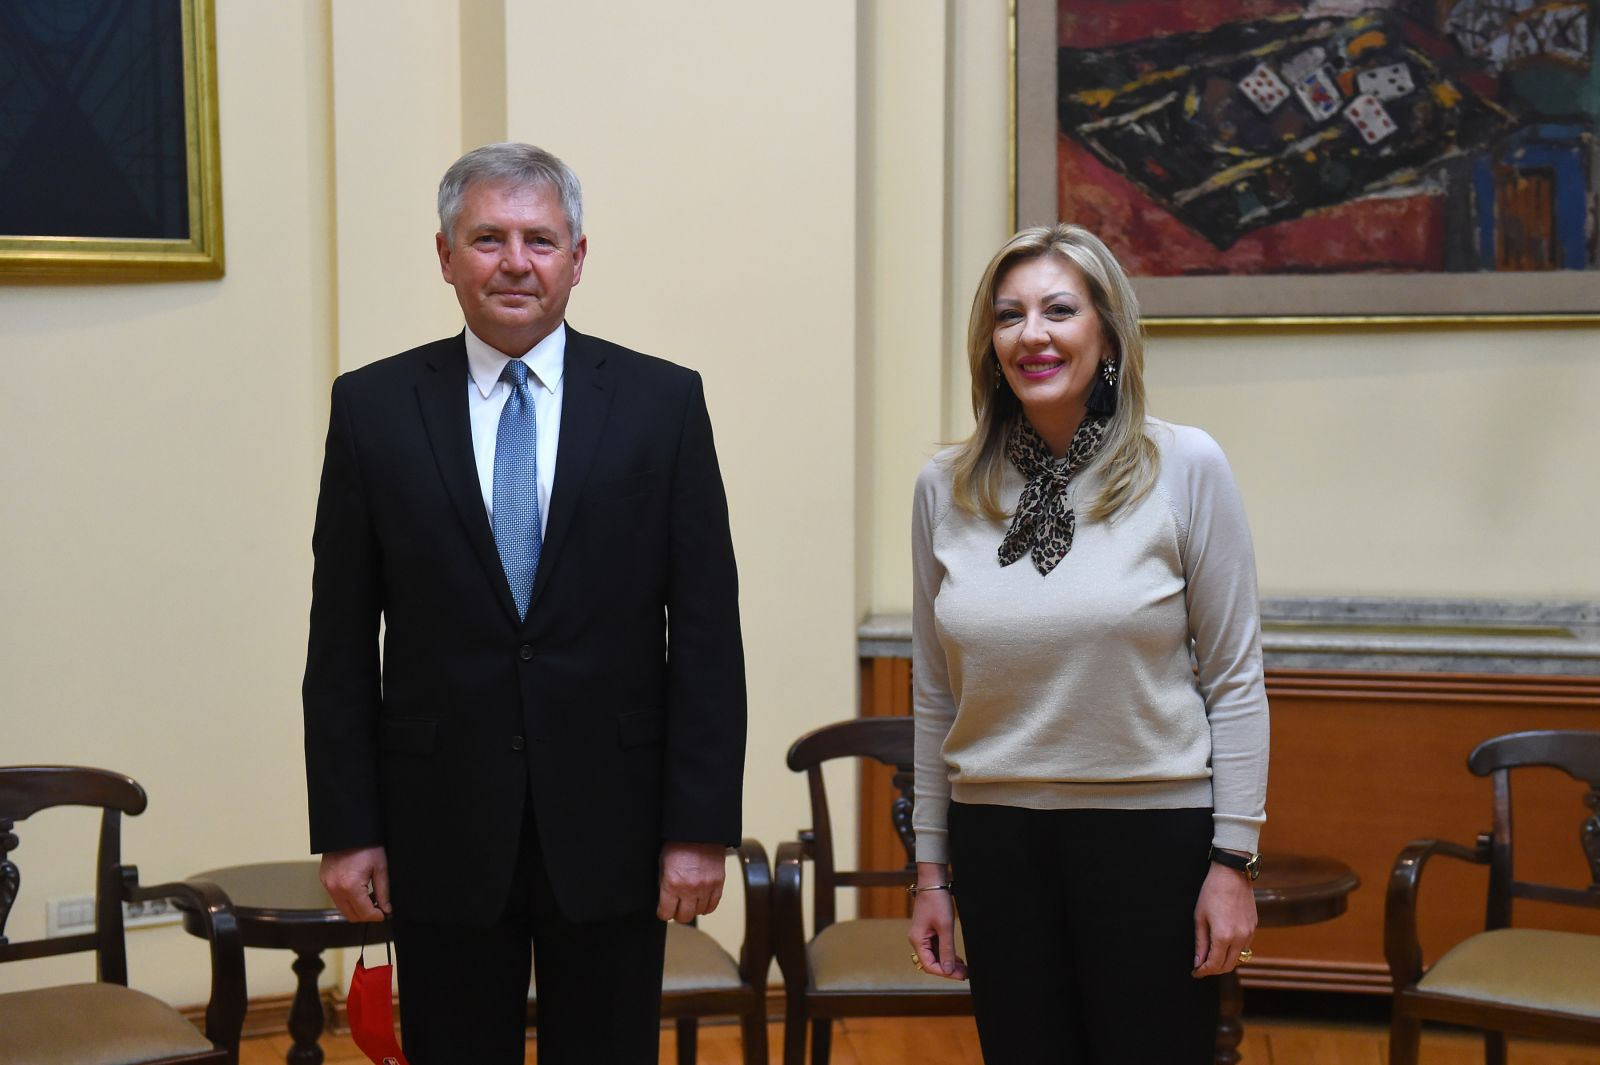 J. Joksimović: Slovakia advocates acceleration of Serbia's European integration